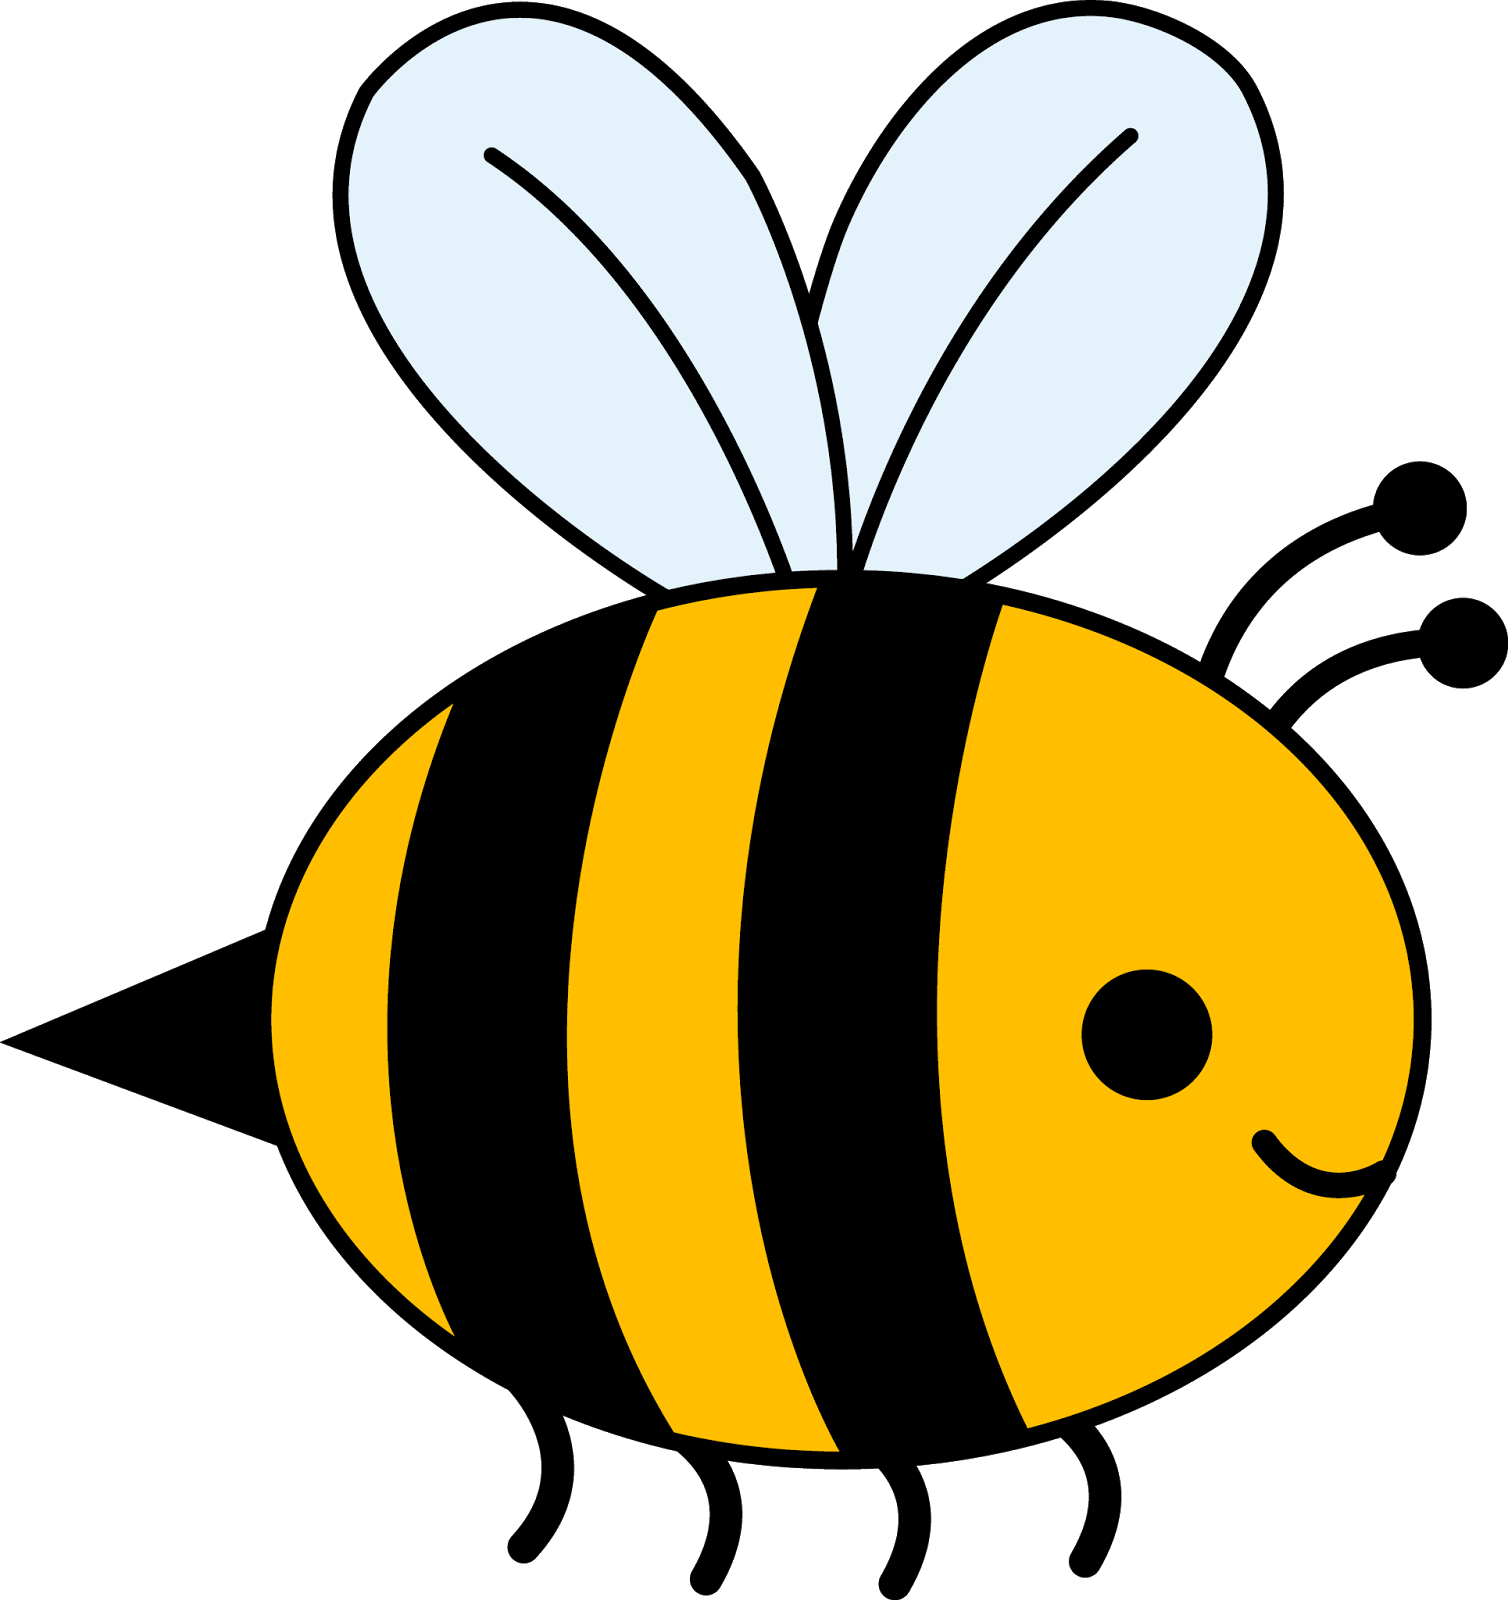 Bee Clipart Black And White | Clipart Pa-Bee Clipart Black And White | Clipart Panda - Free Clipart Images-13